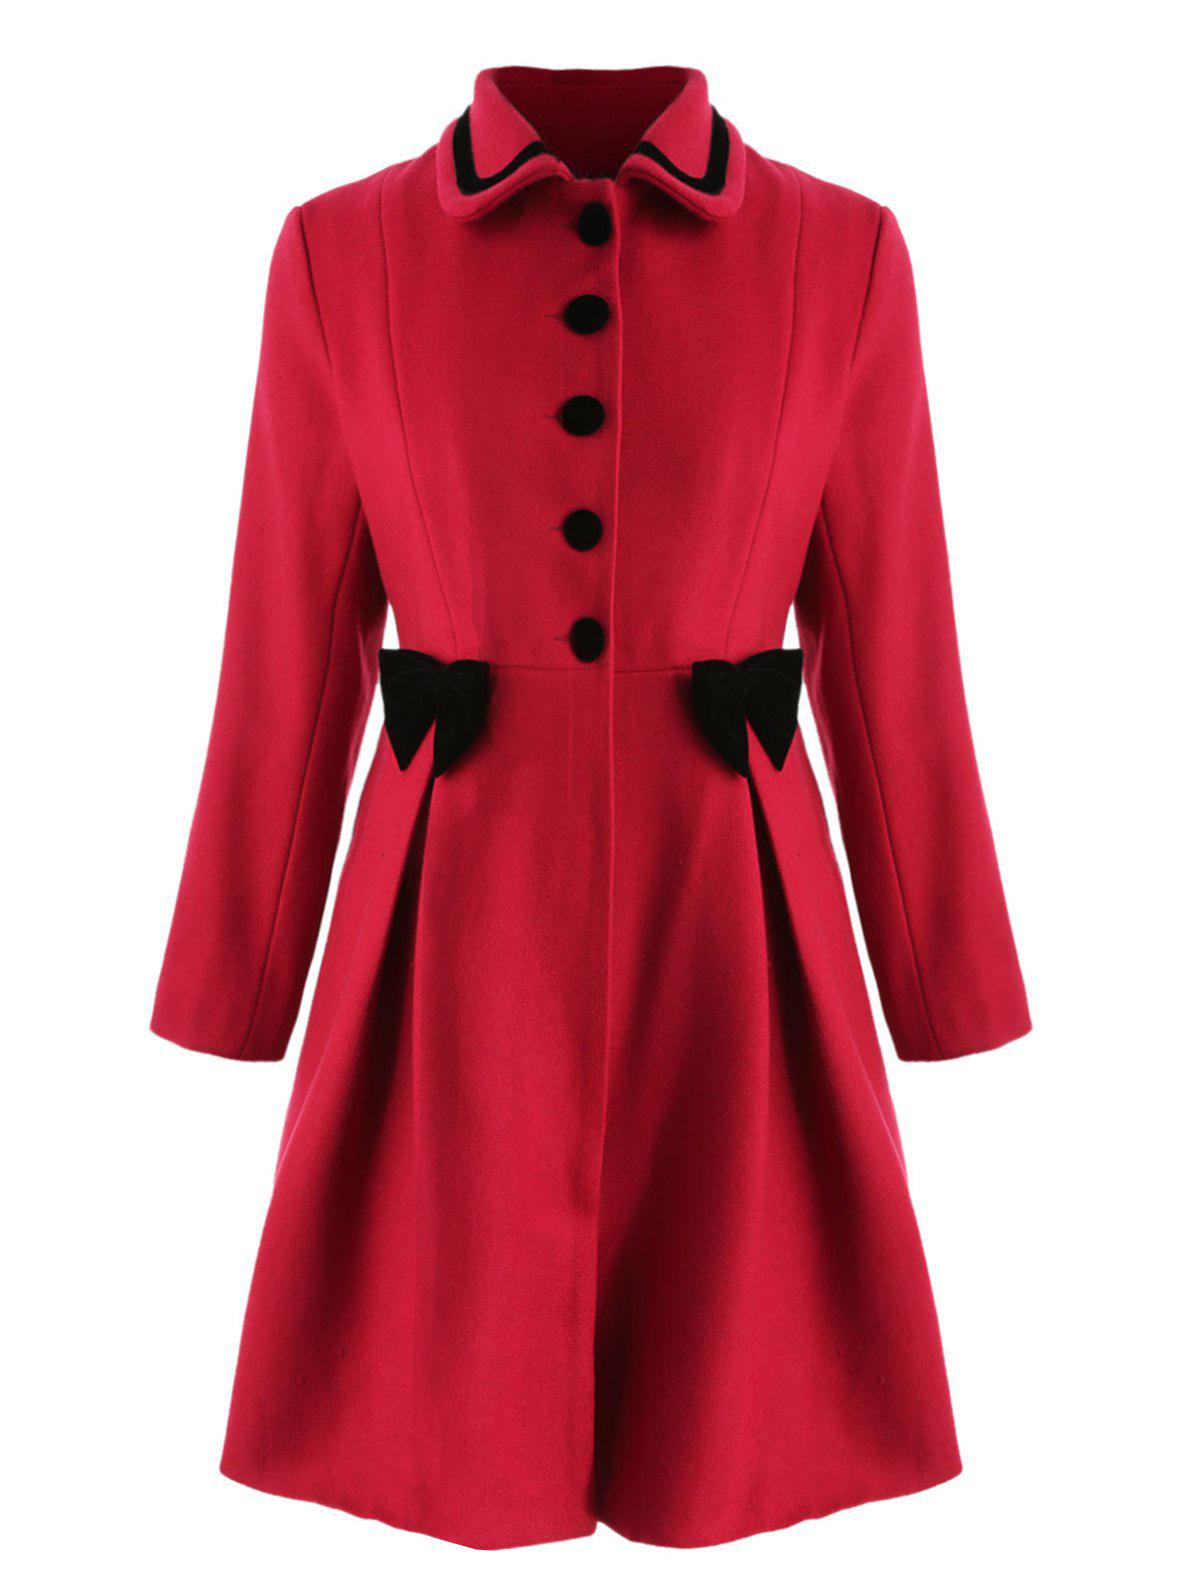 Plus Size Bowknot Embellished Longline Coat - RED 2X